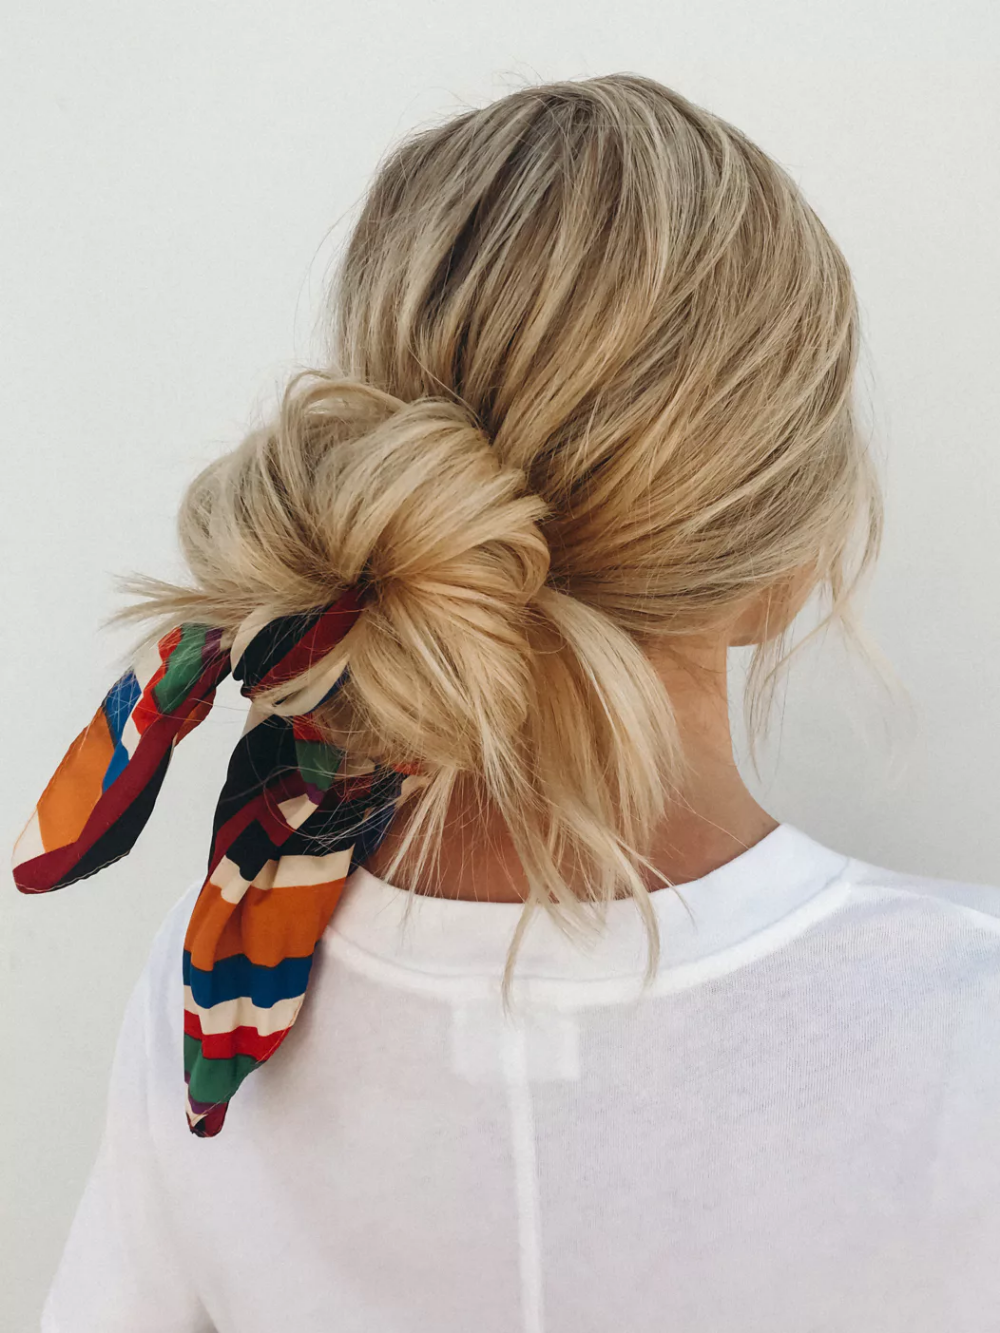 5 Quick and Easy Hairstyles That Look Even Better With Extensions | Long hair styles, Hair ...